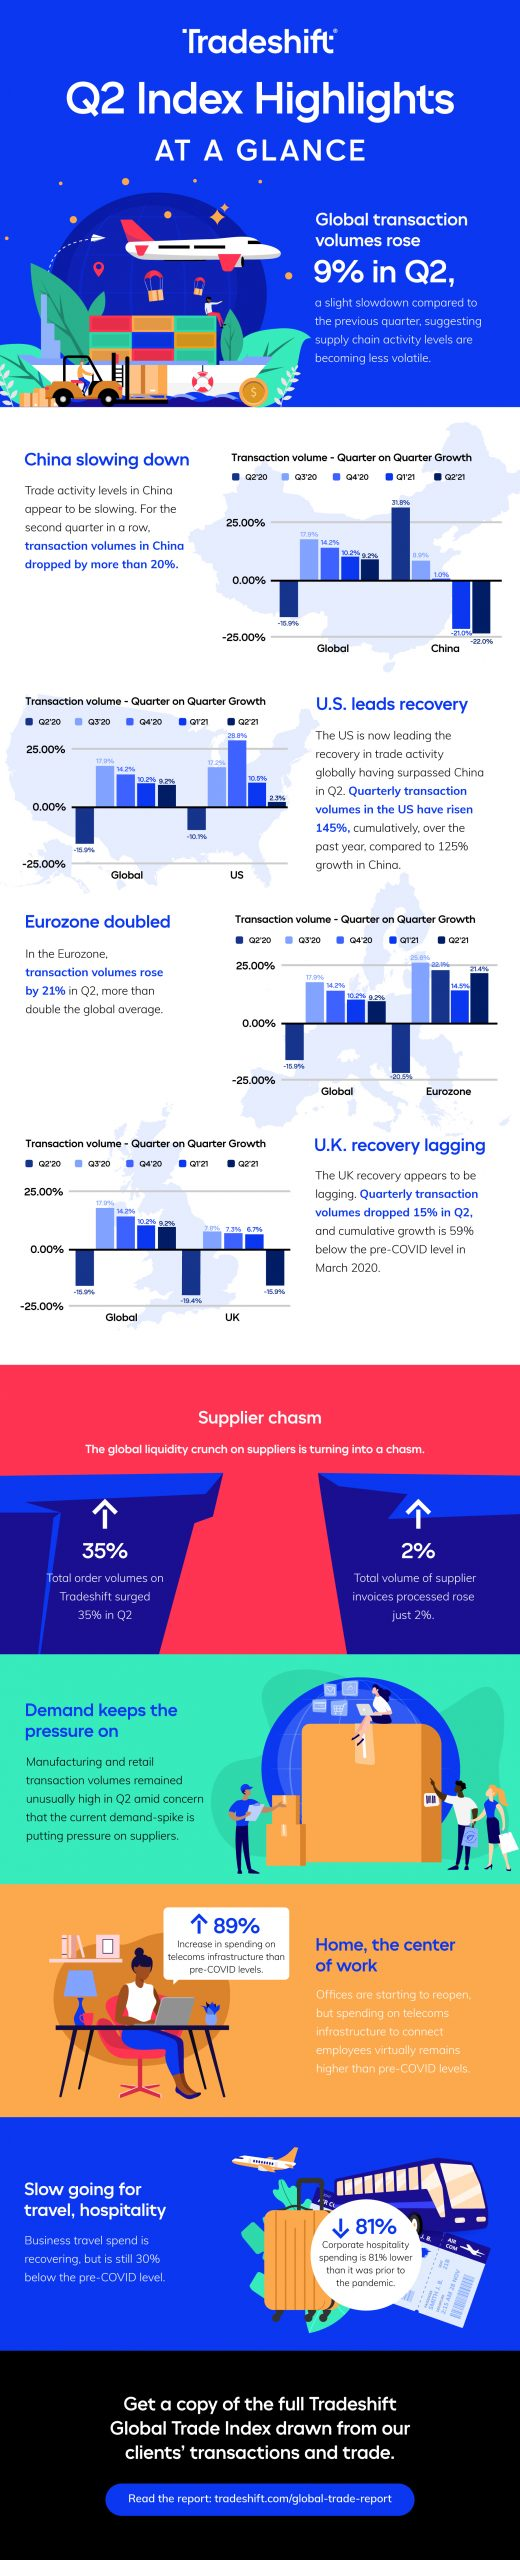 global trade health q2 infographic